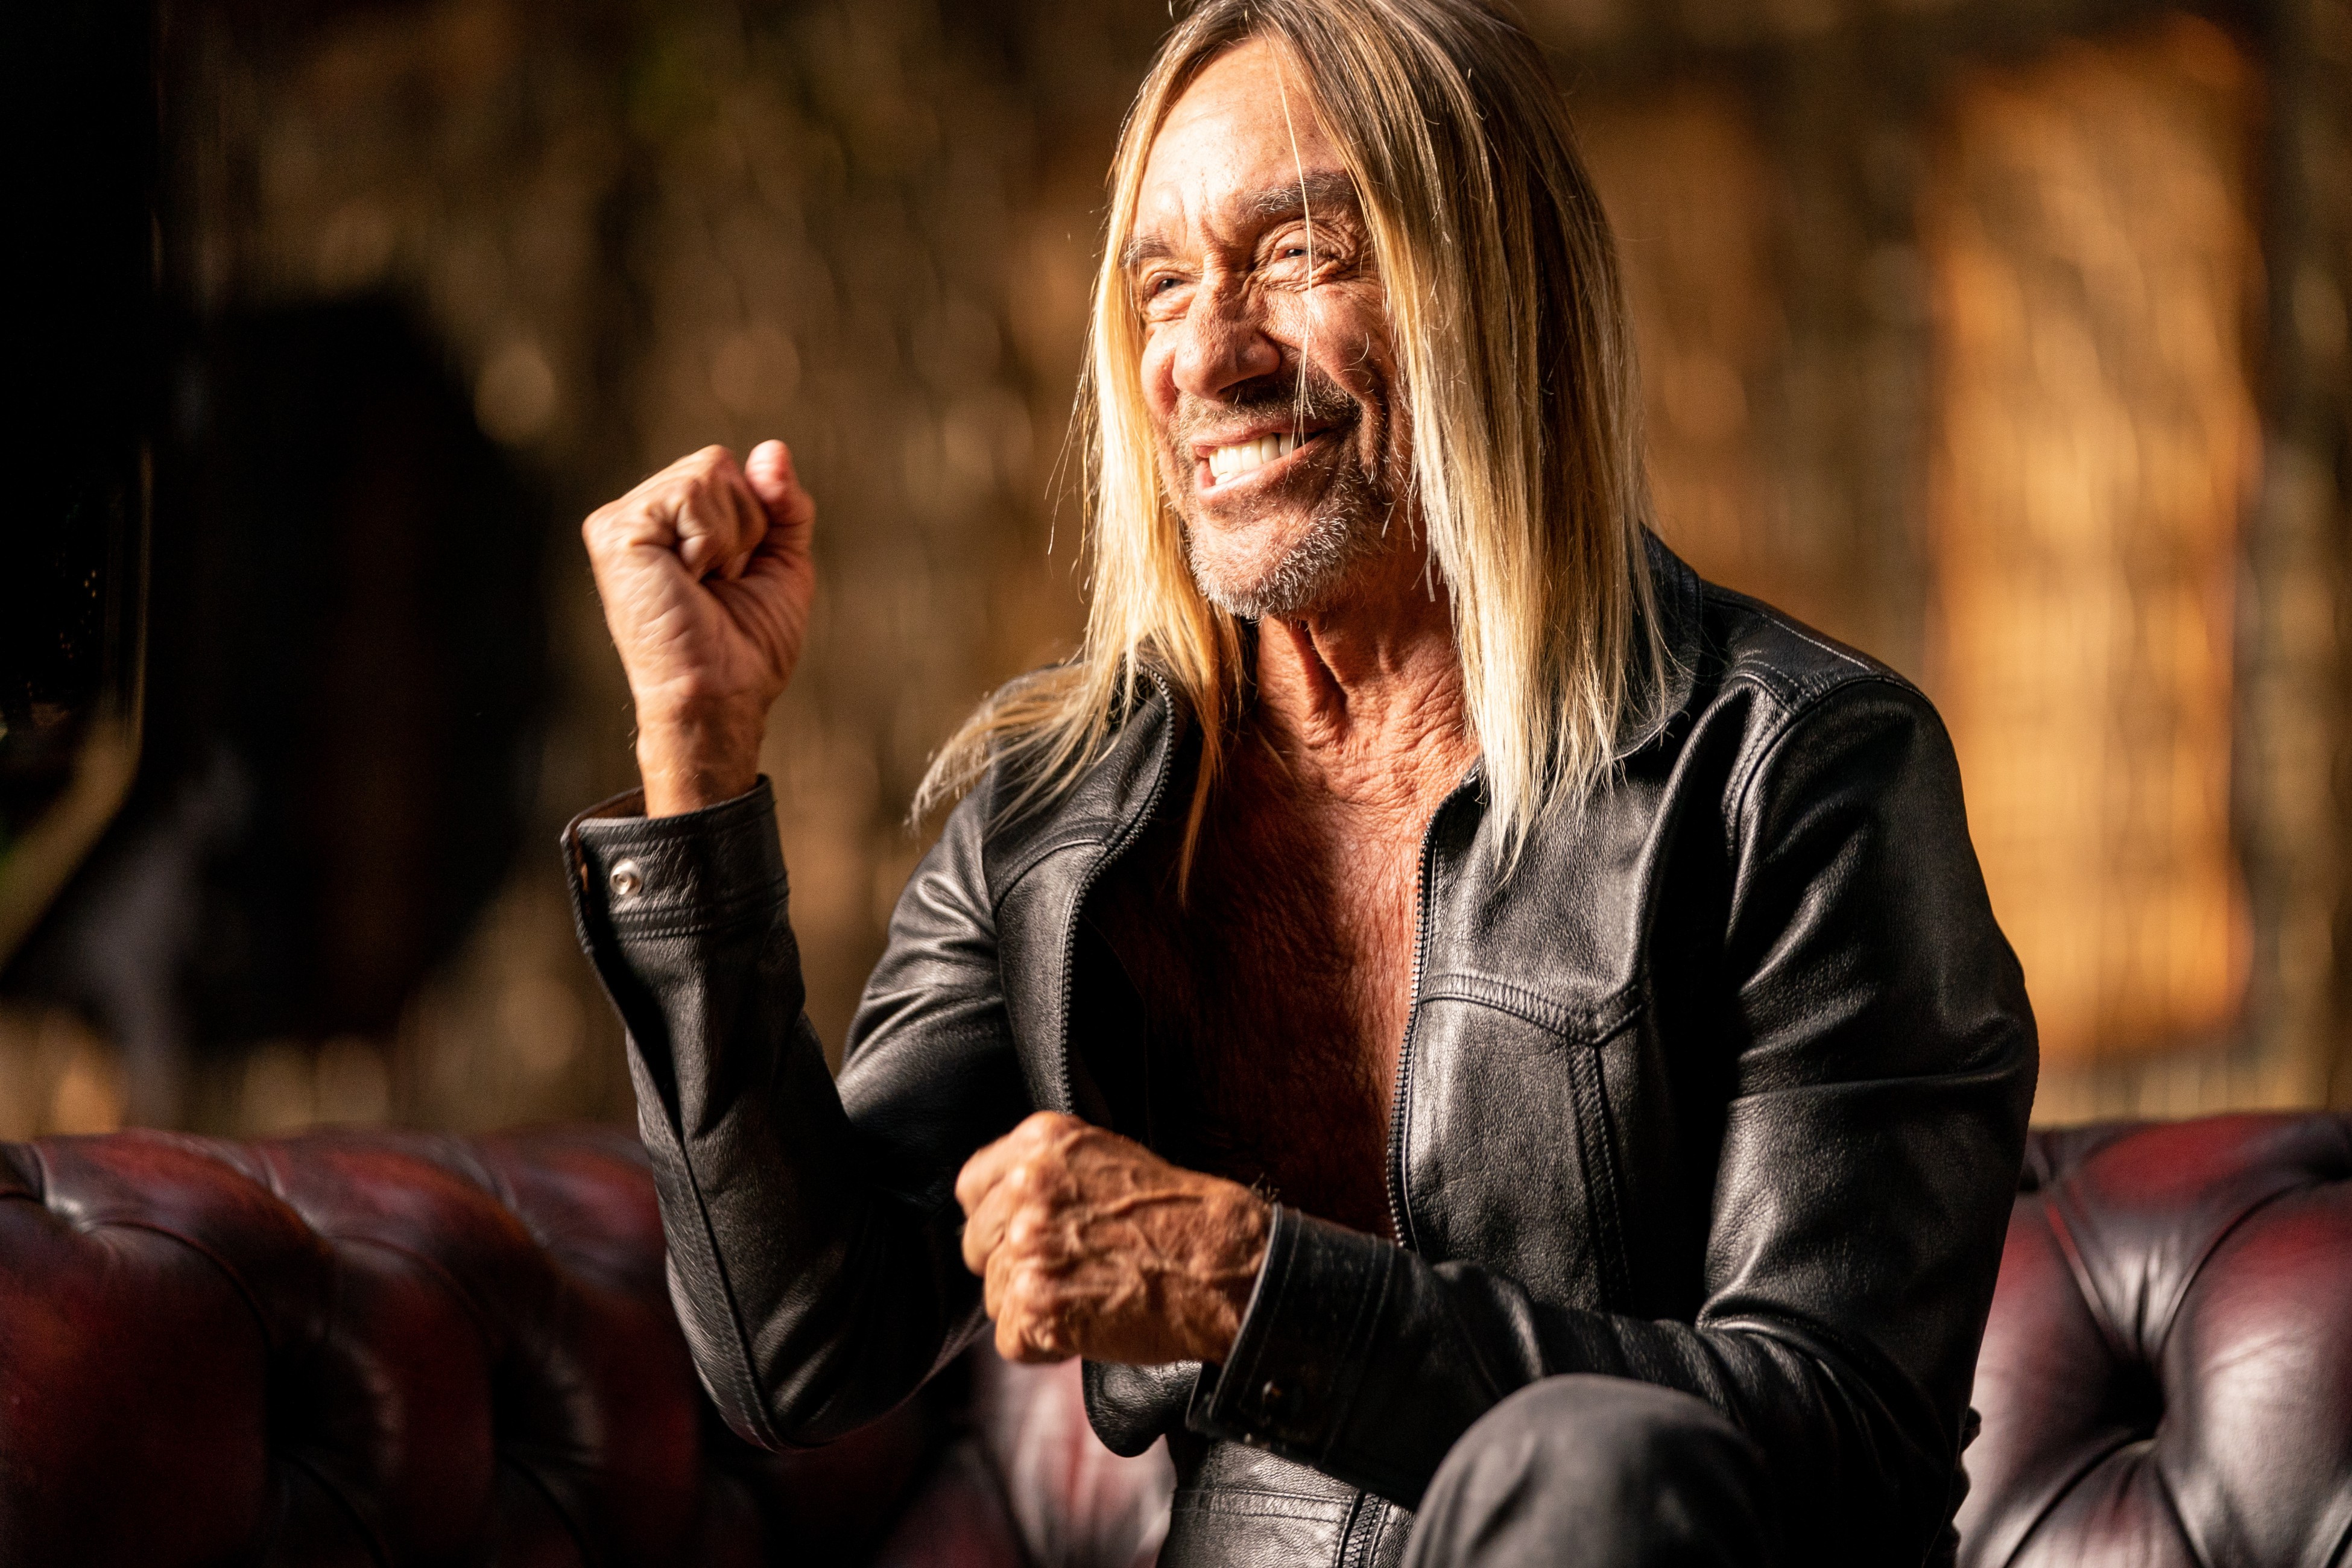 Iggy Pop, frontman for The Stooges and executive producer for Punk (Source: Hopper Stone/Epix)